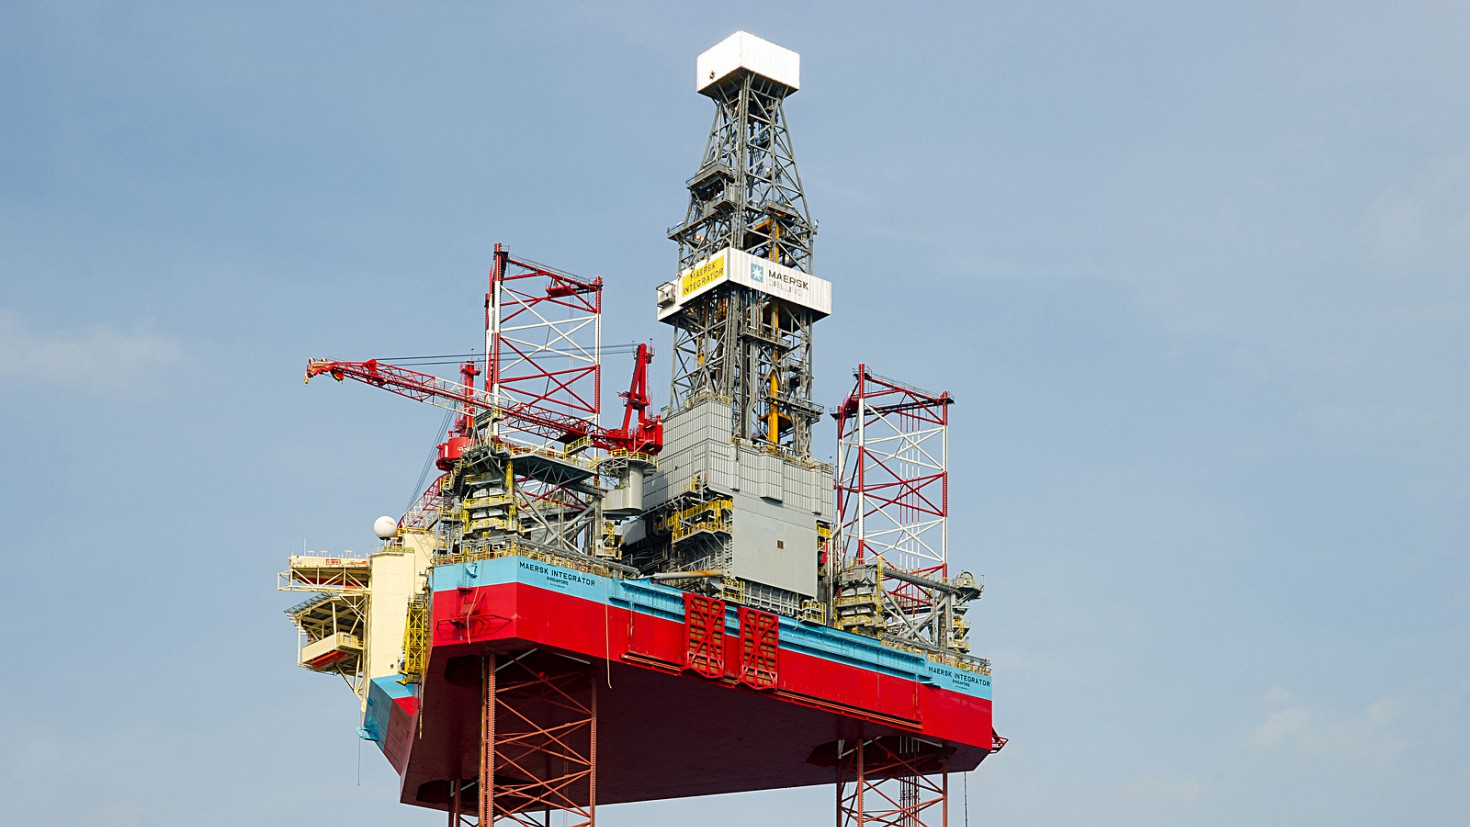 foto: maersk drilling / creative commons